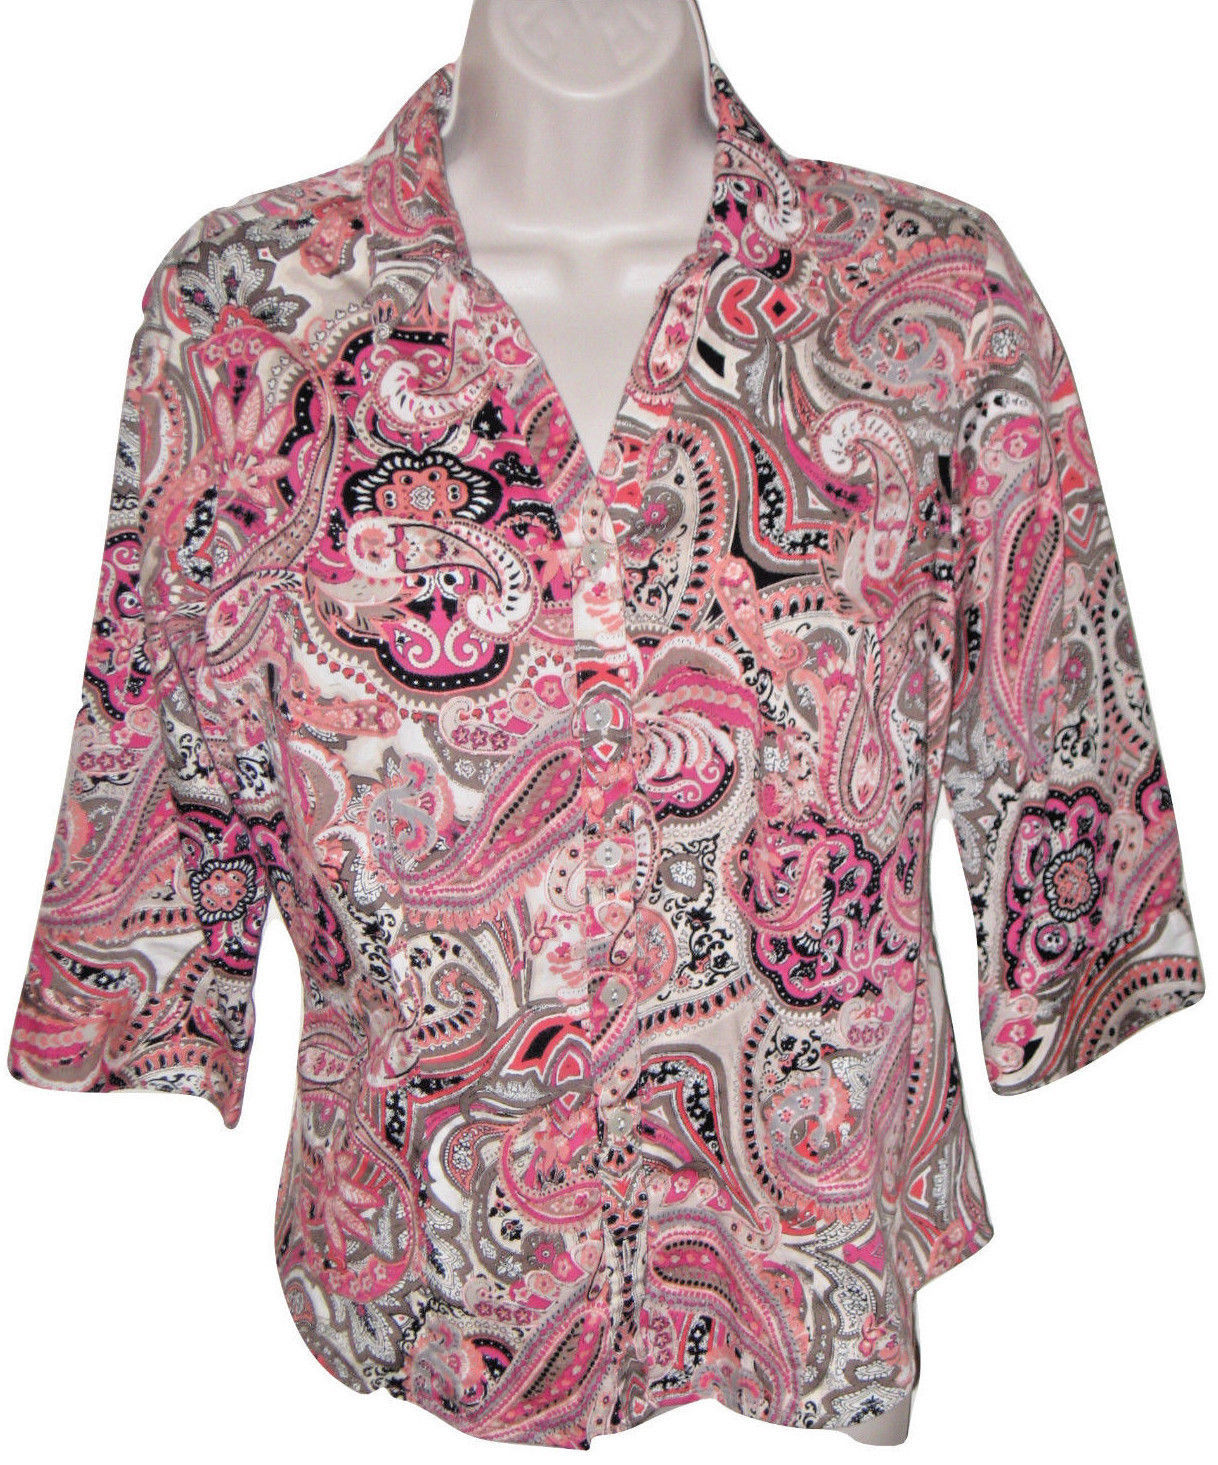 f09e7b7fabd28e 212 COLLECTION Size PM/ M Pink Paisley 3/4 and 50 similar items